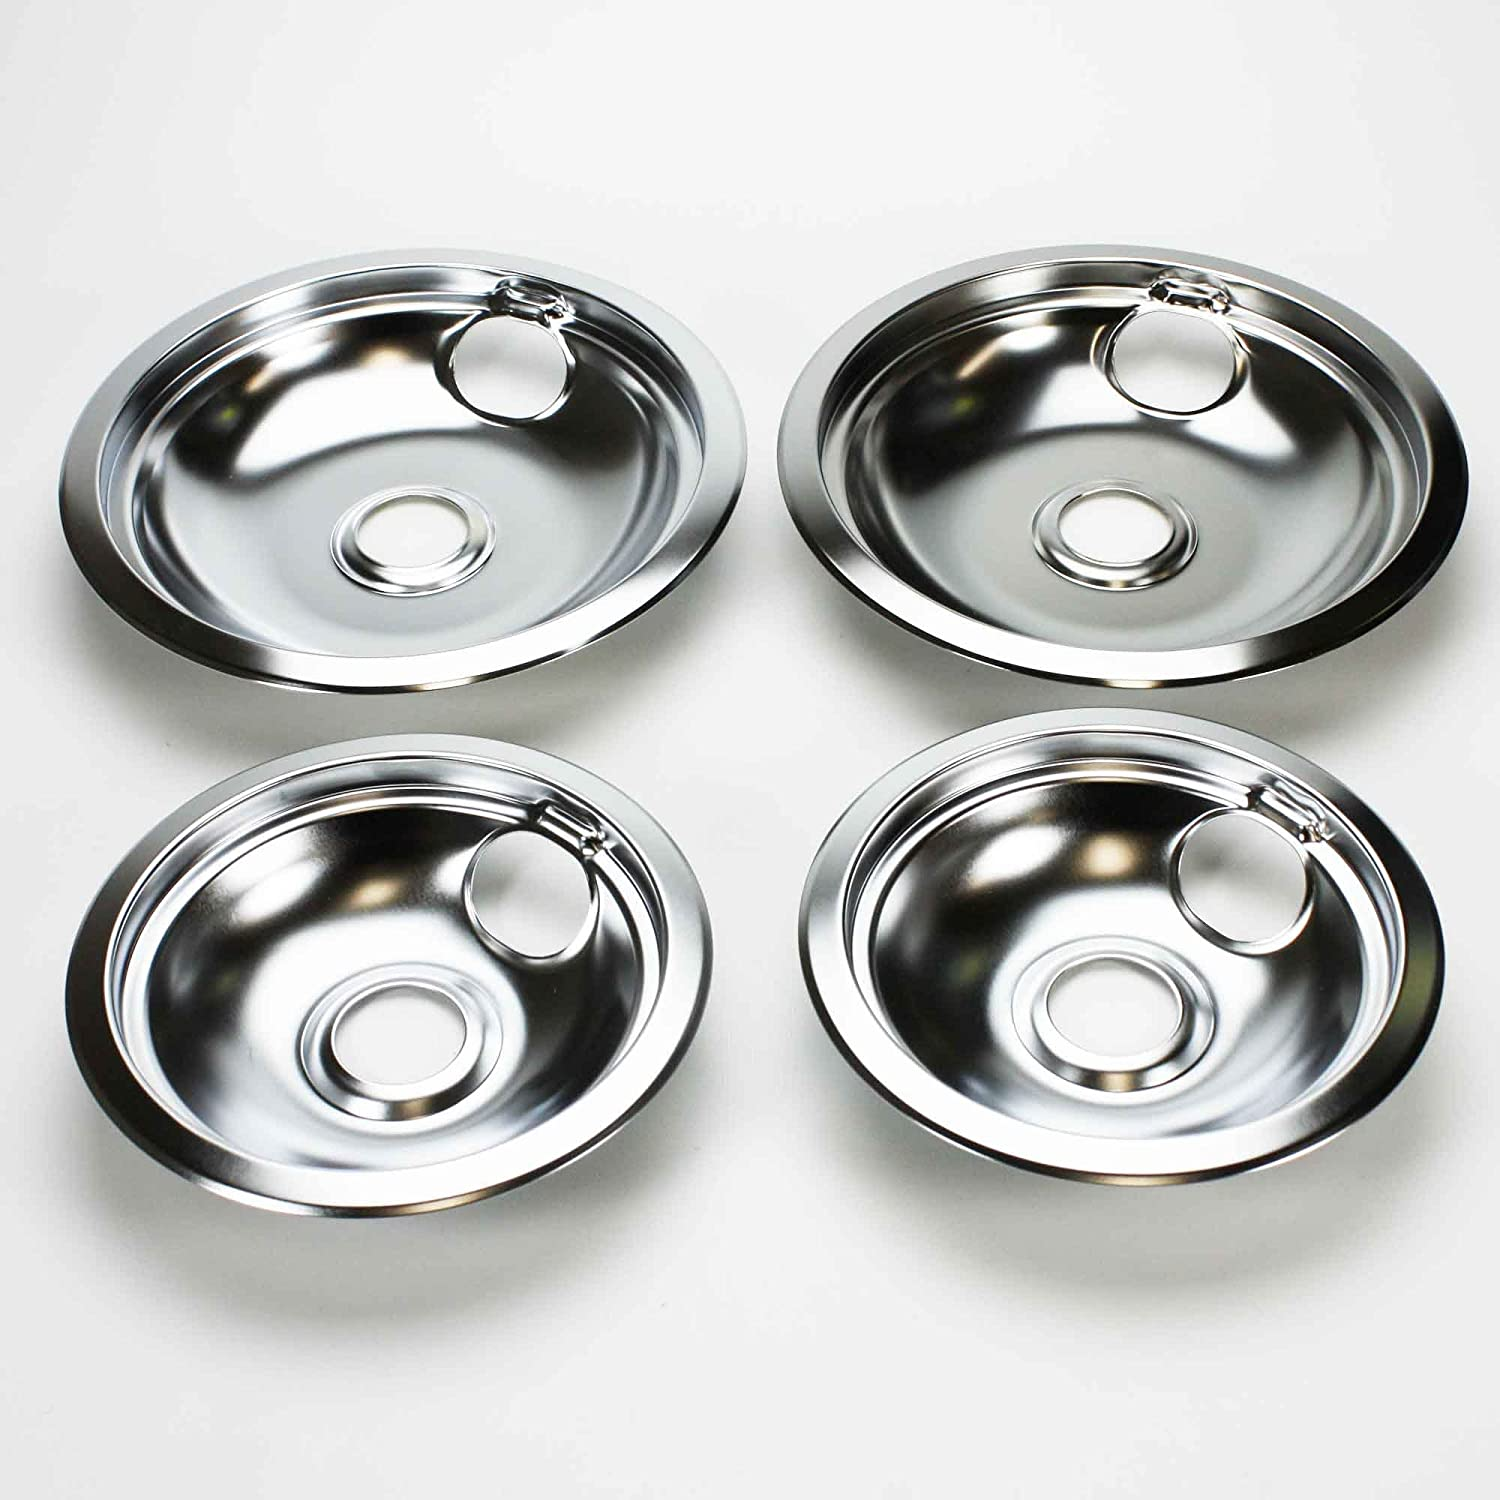 """316048413 AND 316048414 OEM FRIGIDAIRE KENMORE BRAND DRIP PAN SET - INCLUDES (2) 6"""" PANS AND (2) 8"""" PANS"""